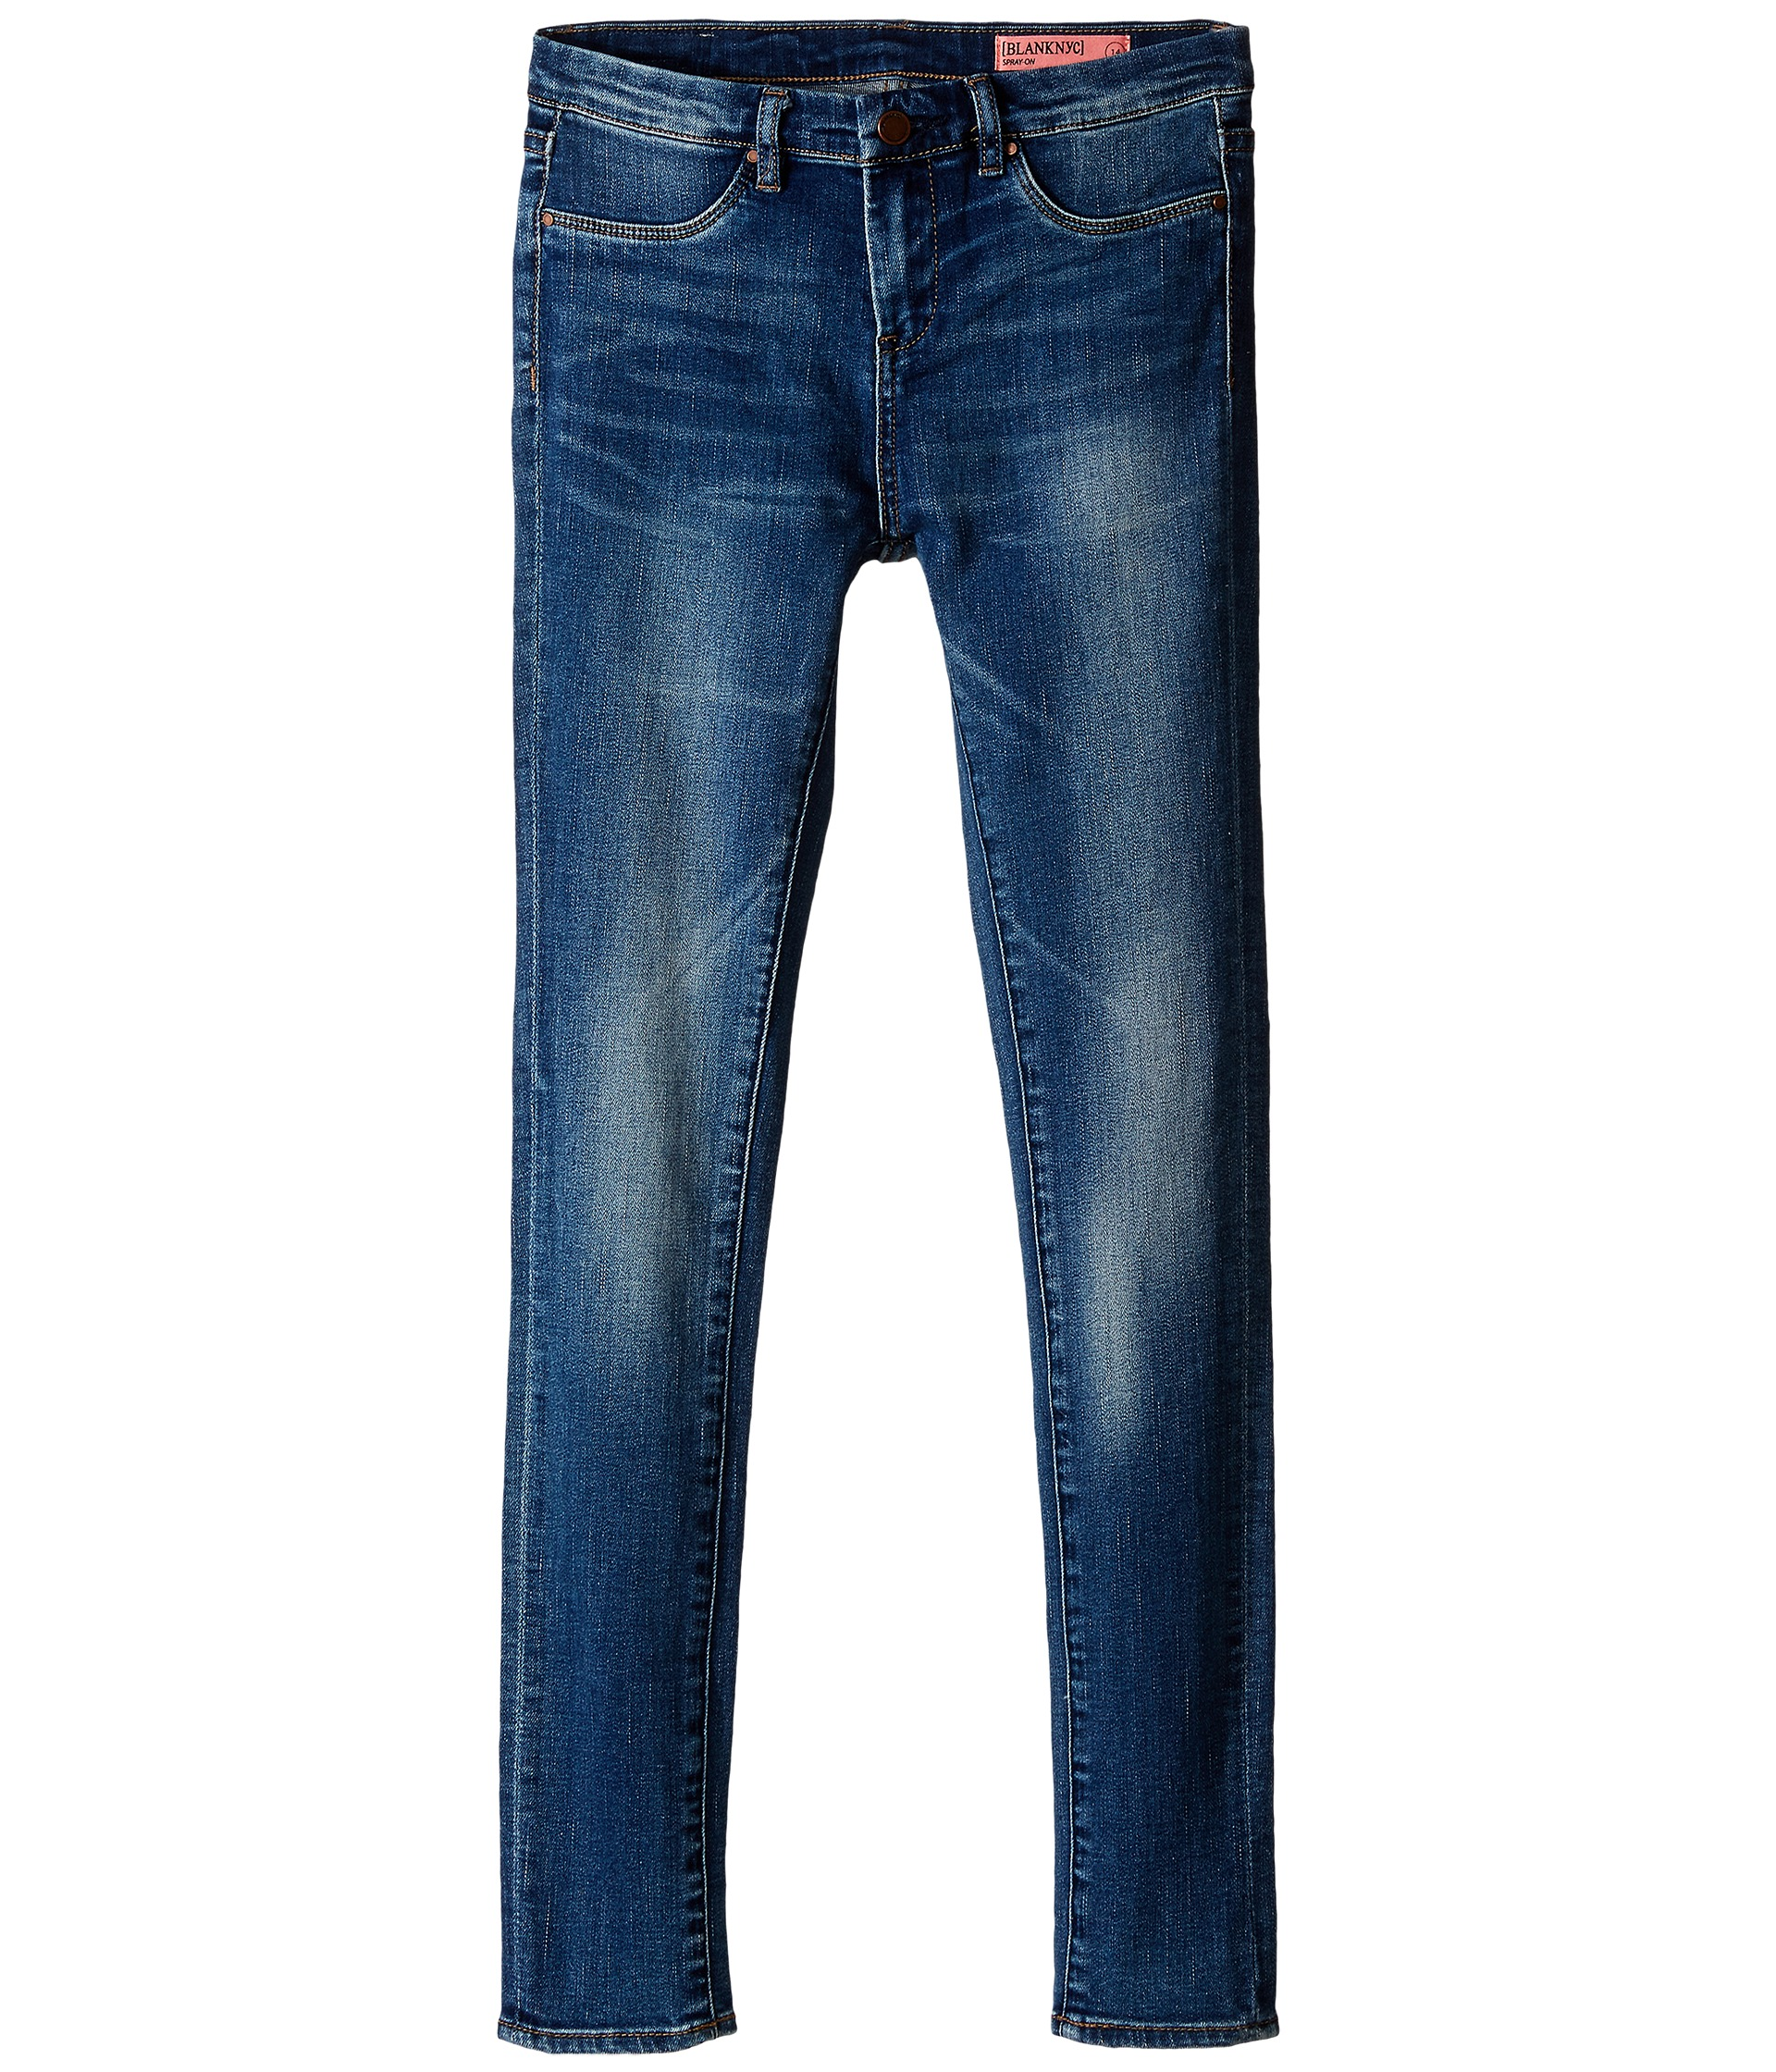 Buy low price, high quality baby skinny jeans children with worldwide shipping on litastmaterlo.gq